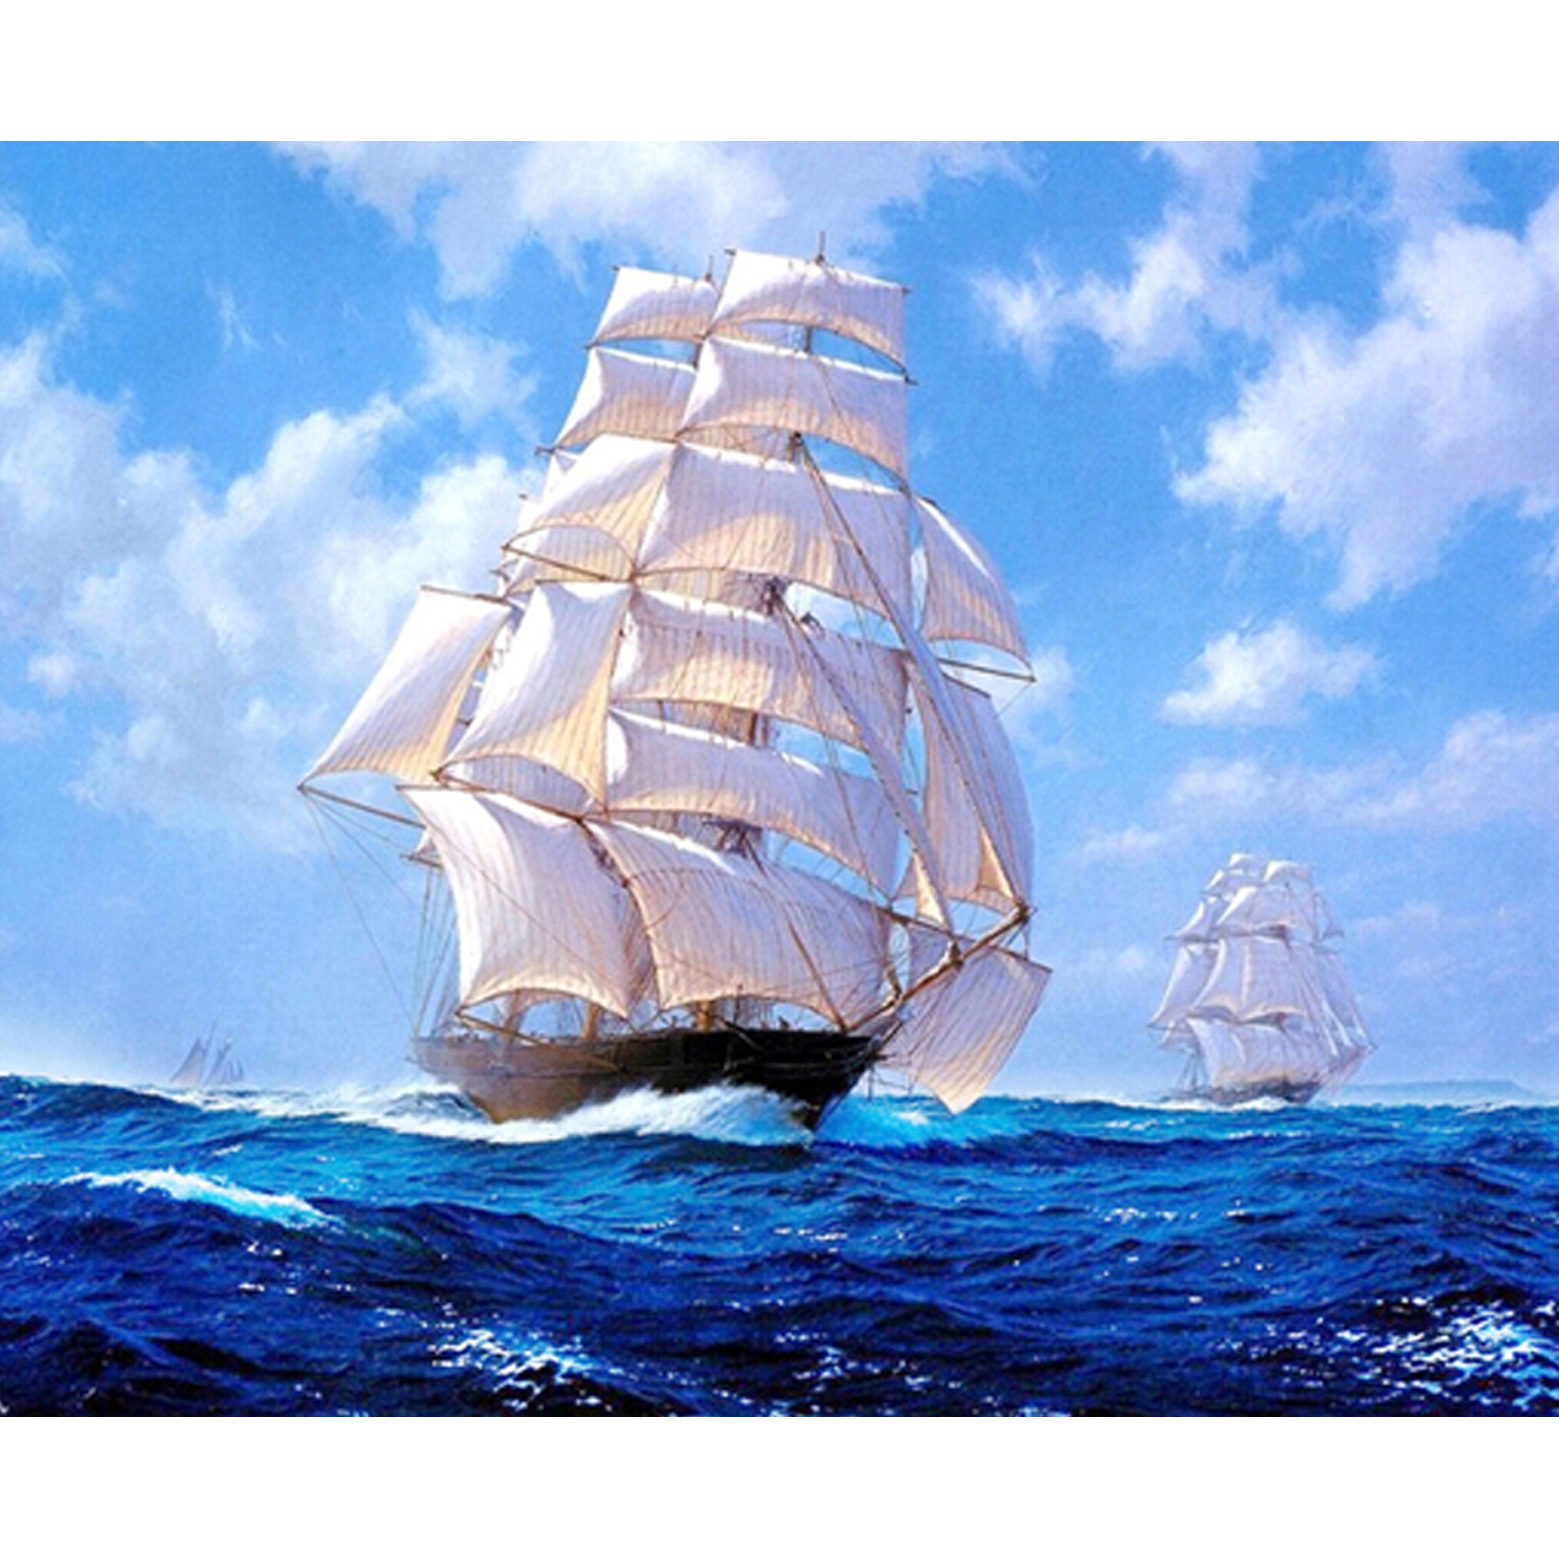 Western Style home decor 5D square Diy Diamond Painting Embroidery gift sailing ship living room sticker 55X45CM RZD-266